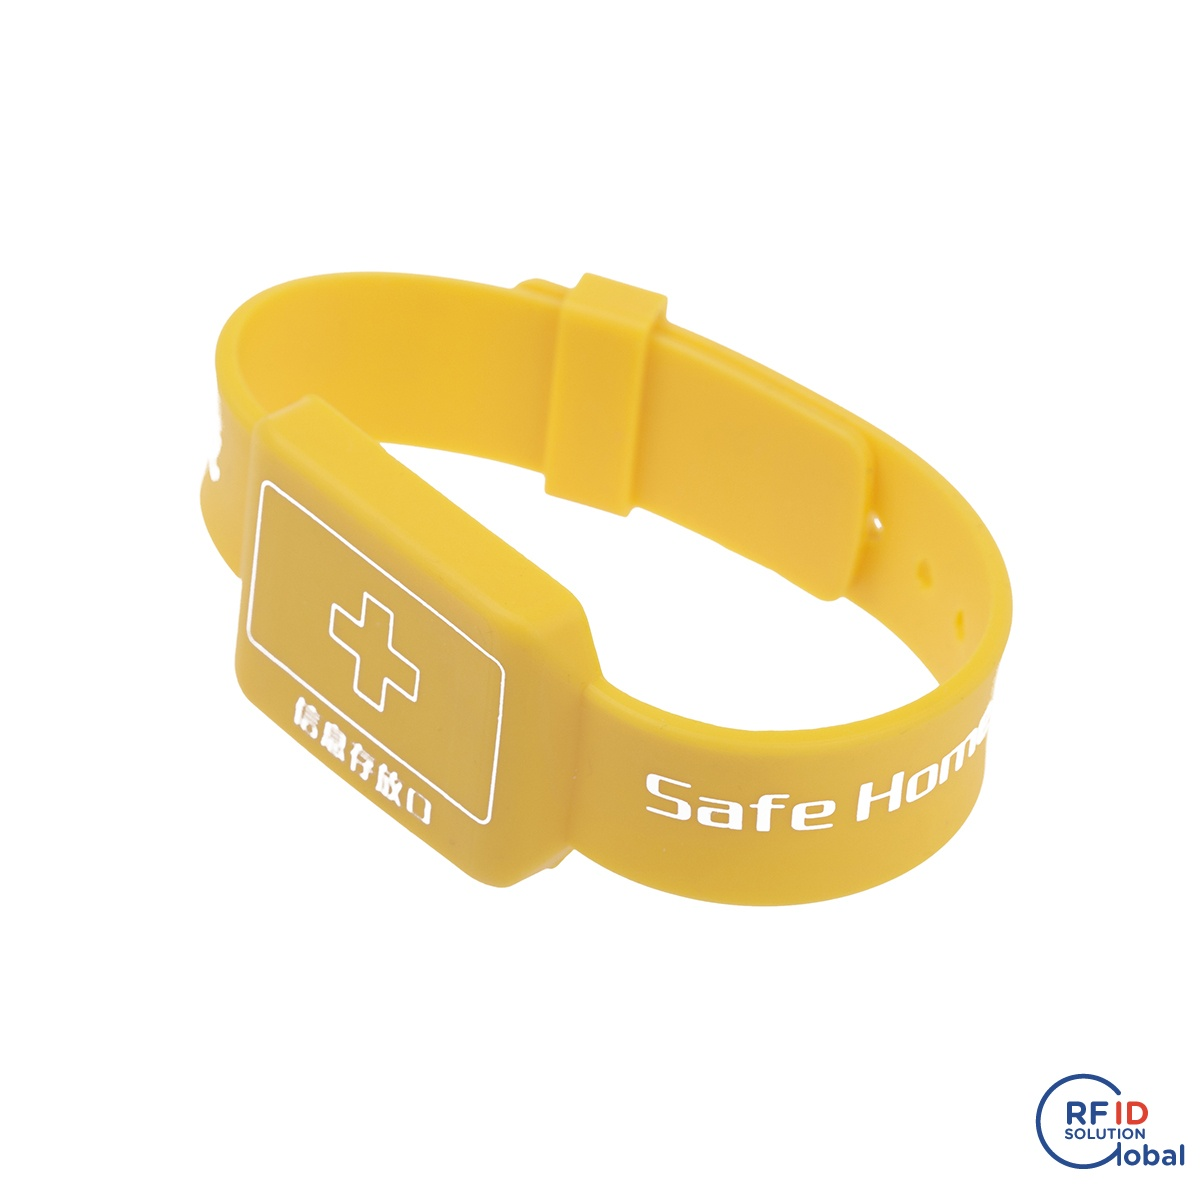 Practical Rfid Bracelet 13.56mhz I-code 2 Soft Silicon Rfid Wristband For Electronic Safe Lock Security & Protection Access Control